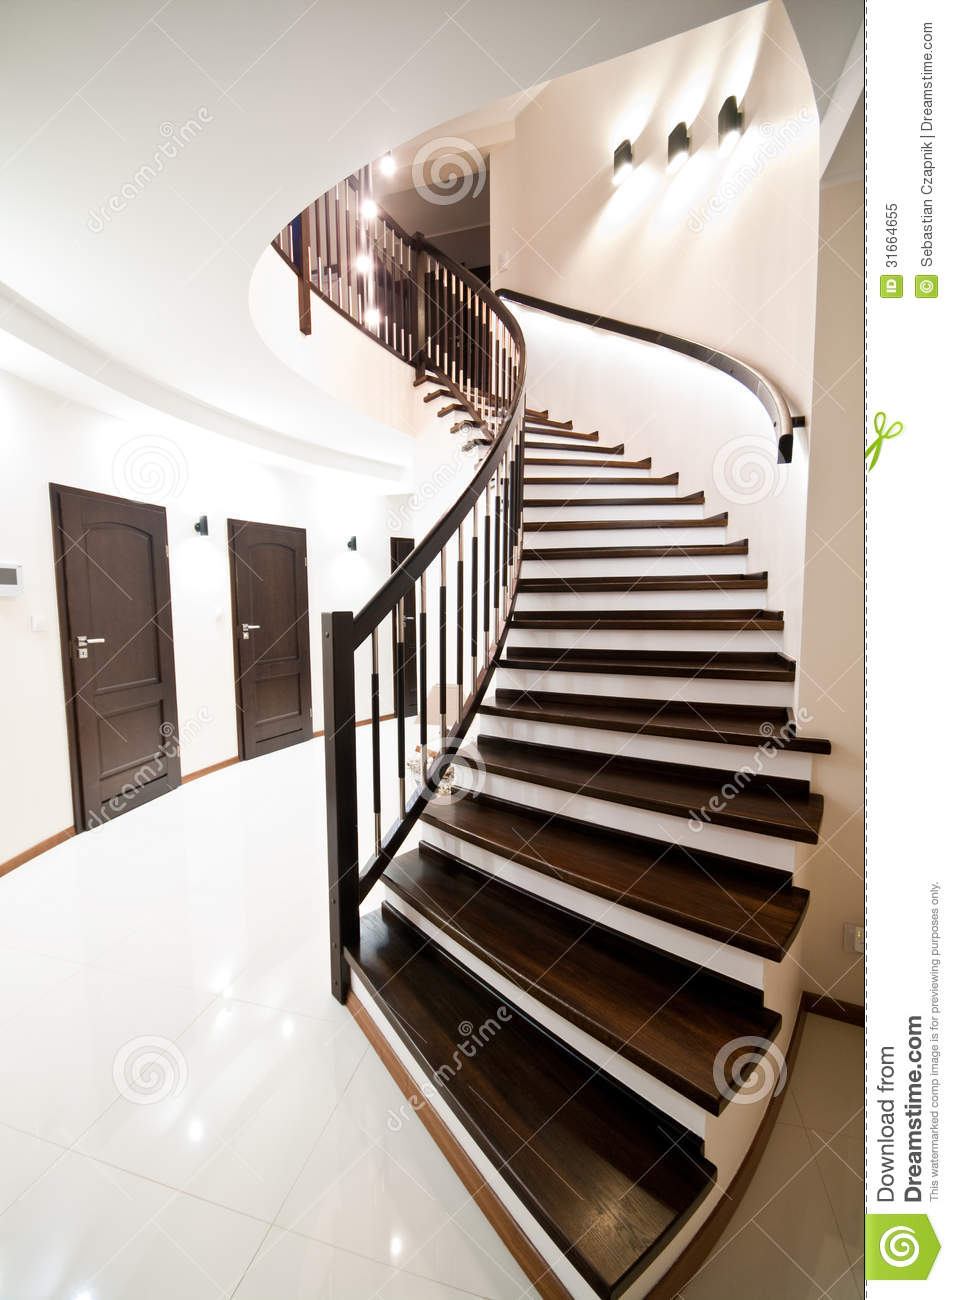 Spiral stairs stock image image of still stairs stair for Square spiral staircase plans hall